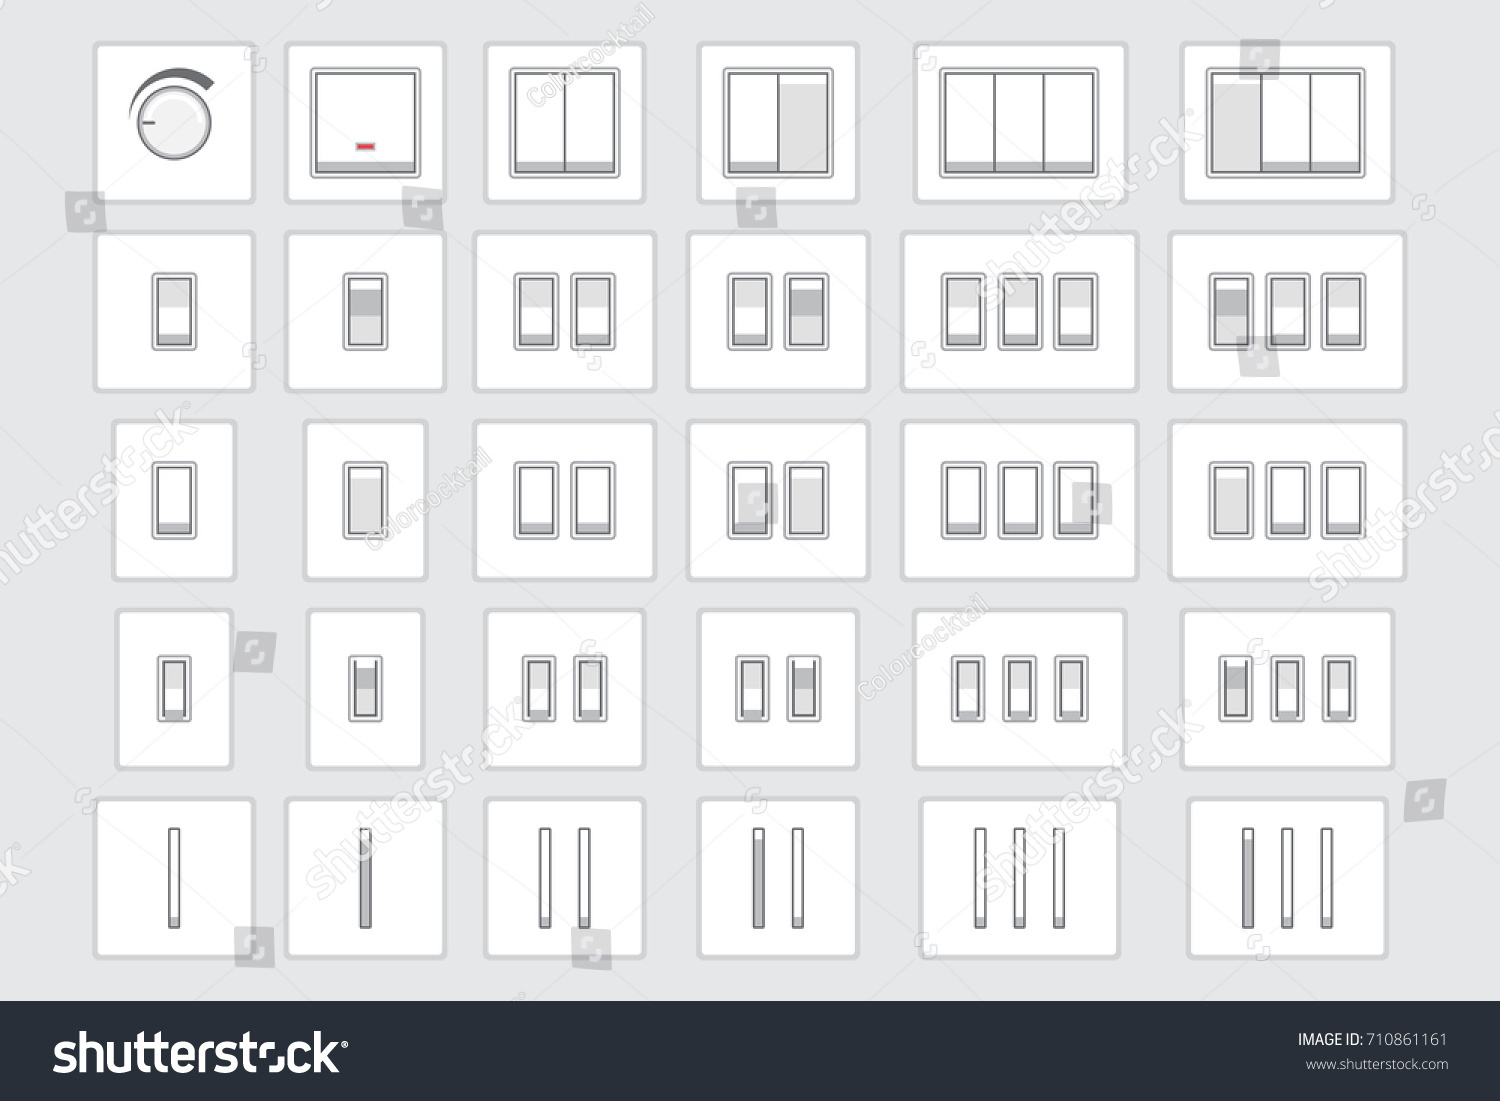 Vector Collection Different Light Switch Types Stock Vector (Royalty ...